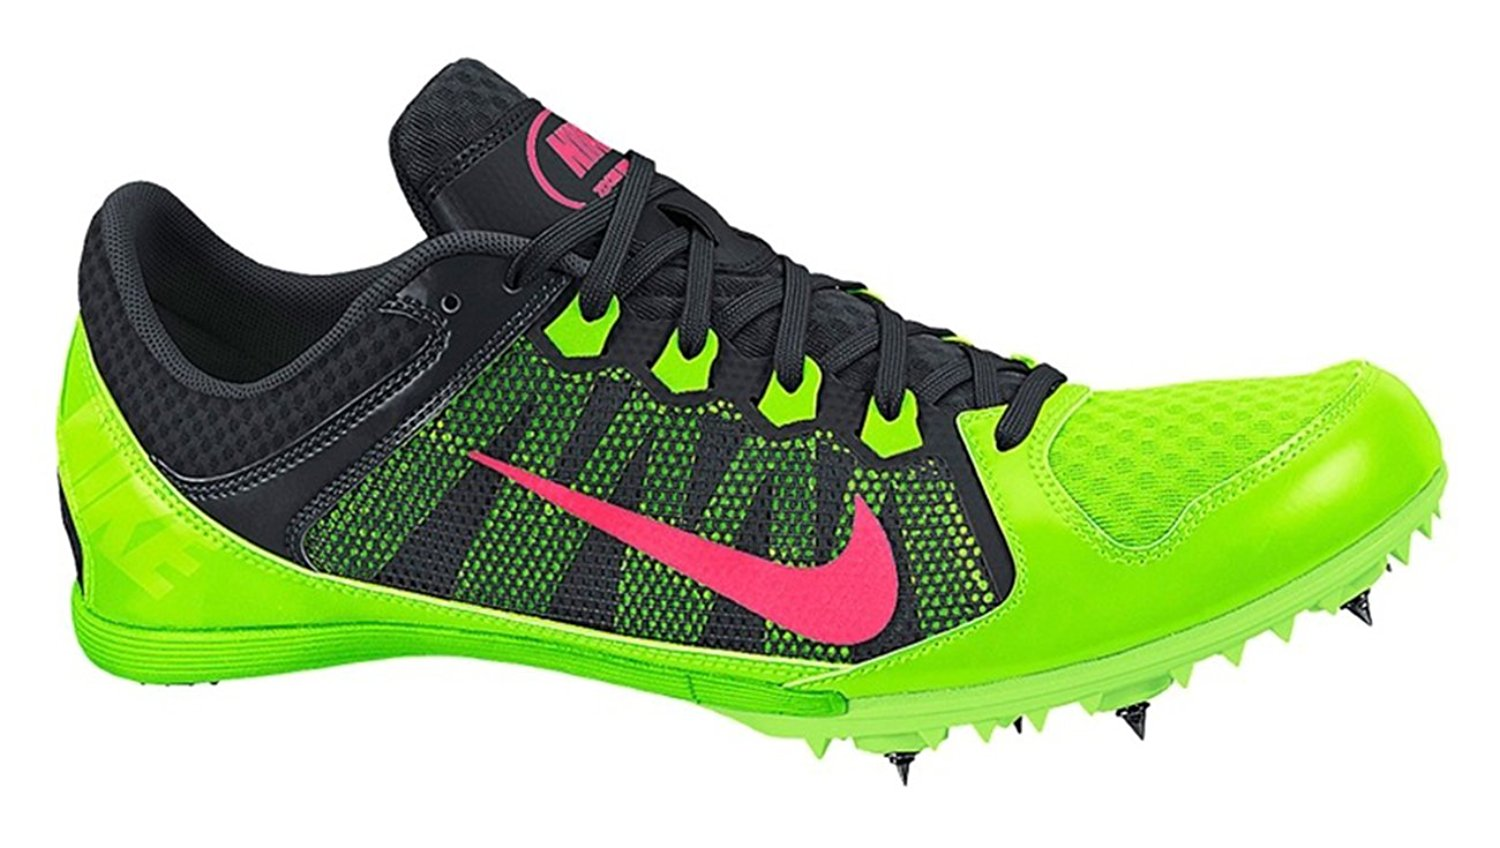 Nike Women s Zoom Rival MD 7 Athletic Track Shoes Green Black Punch ... 49ee7270ac8c